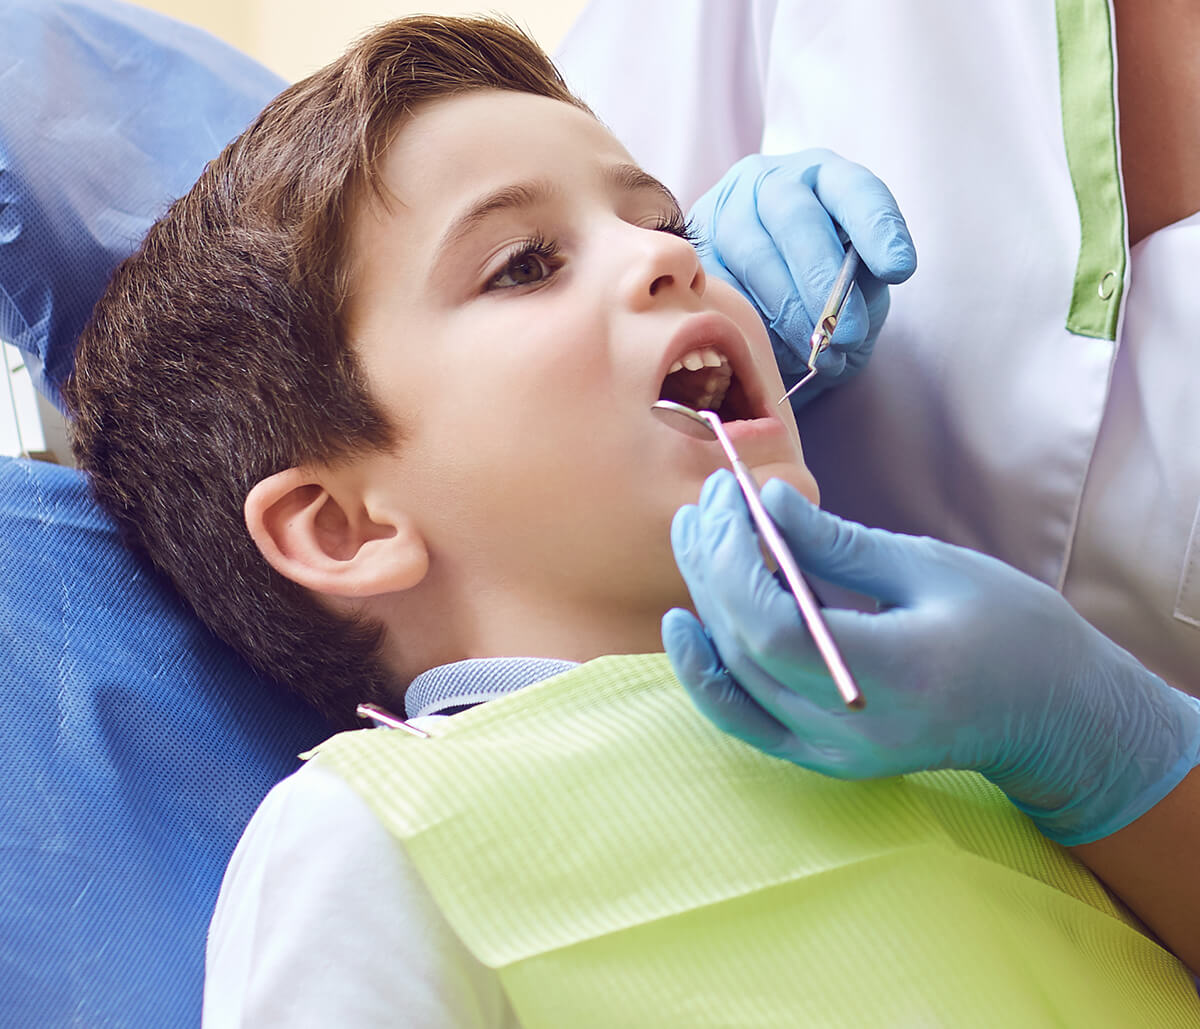 Examining How Parents Can Help Children Prepare for First White Fillings from Dentist in Greensboro, NC Area